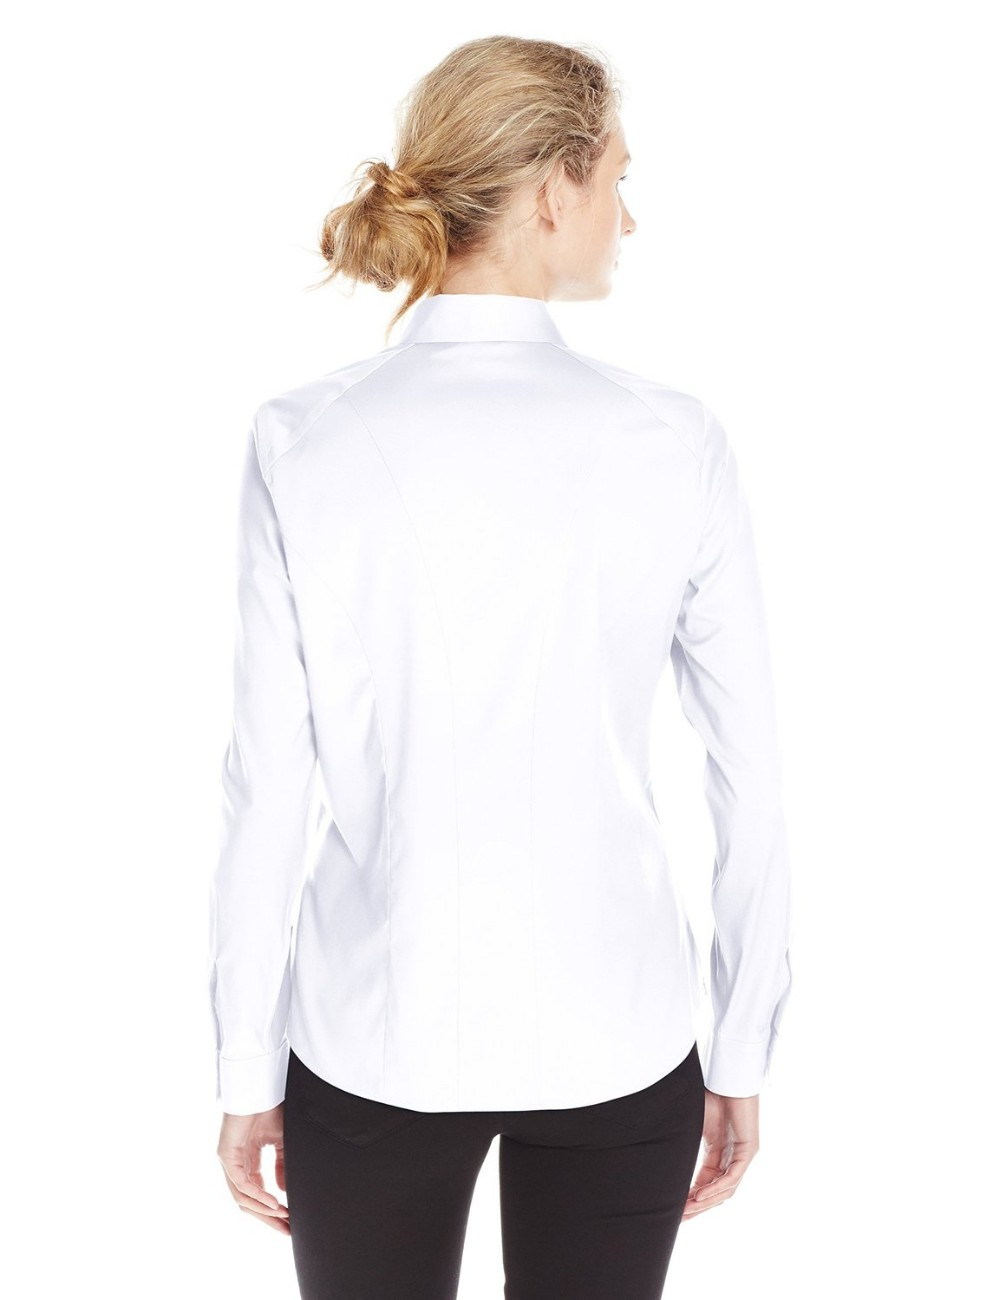 women's high quality office wear formal ink color long sleeve shirt manufacturer